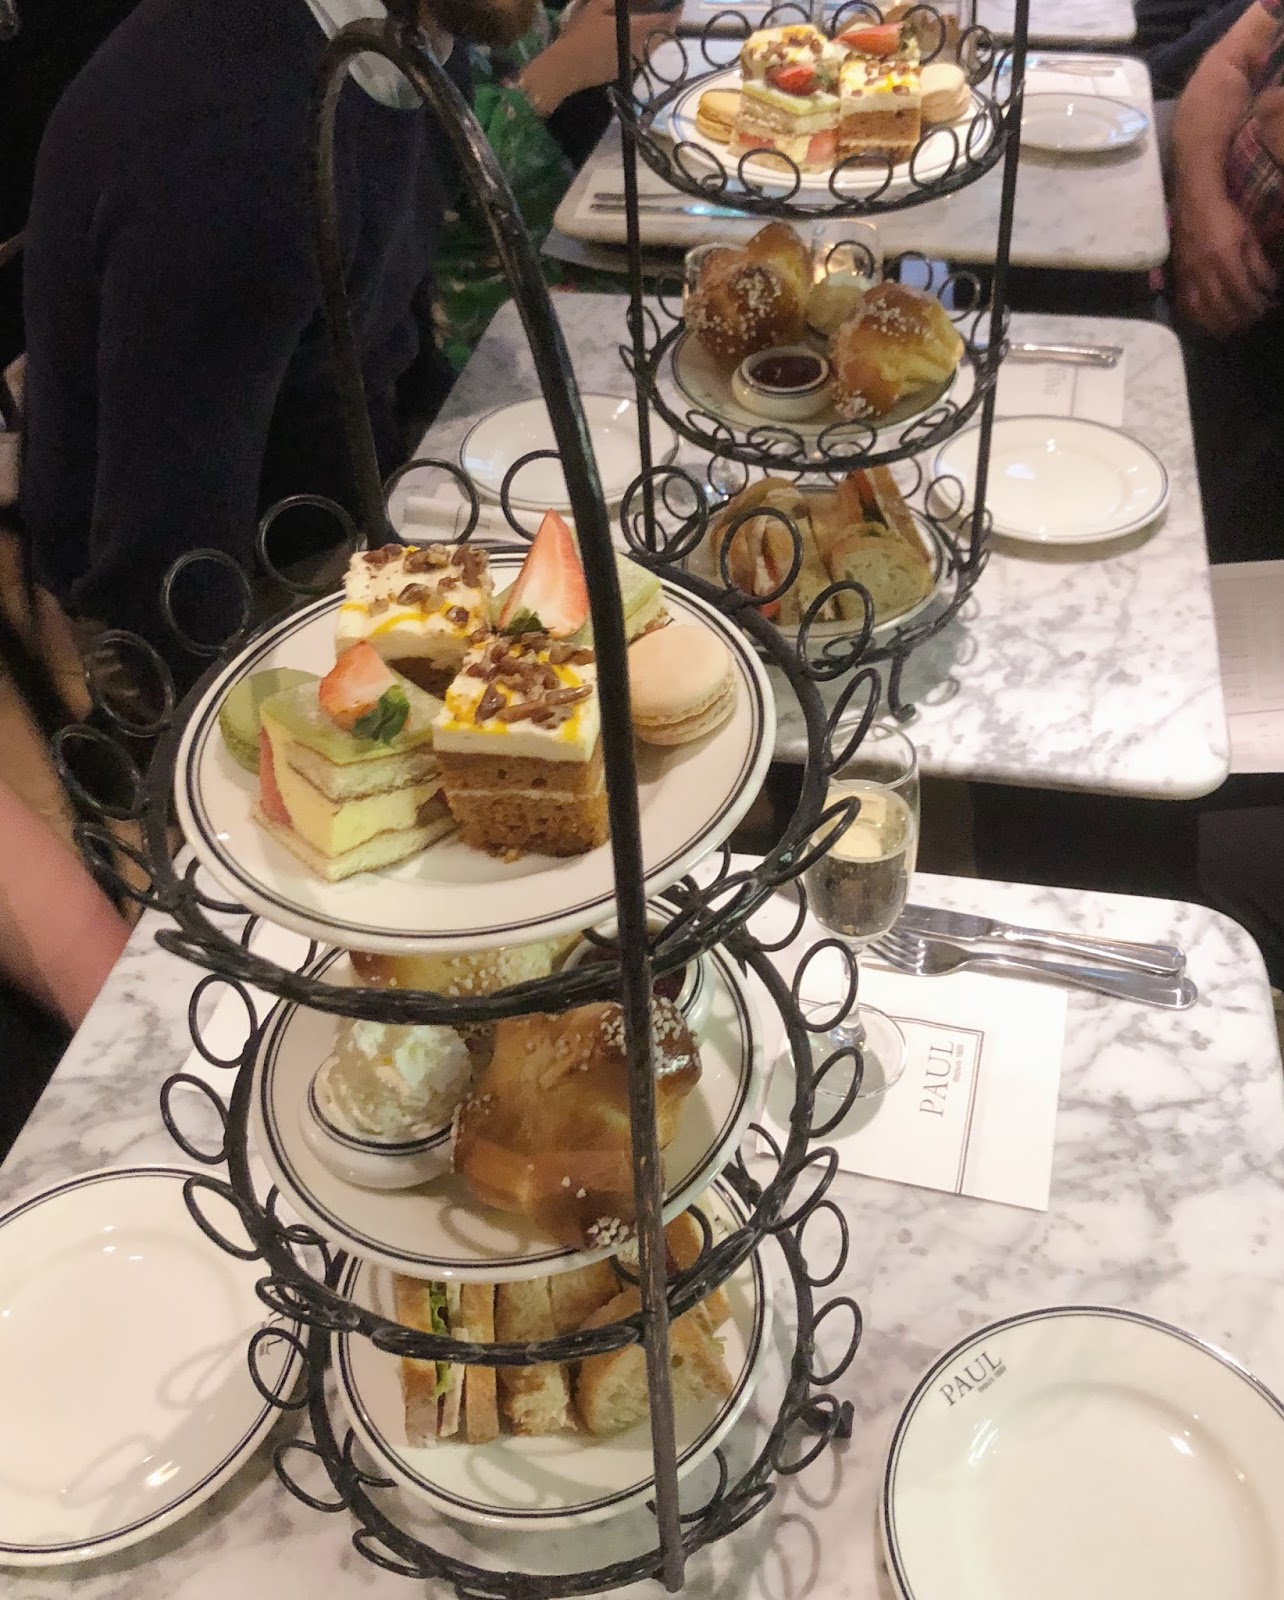 Afternoon tea with three-tiered with cakes and scones